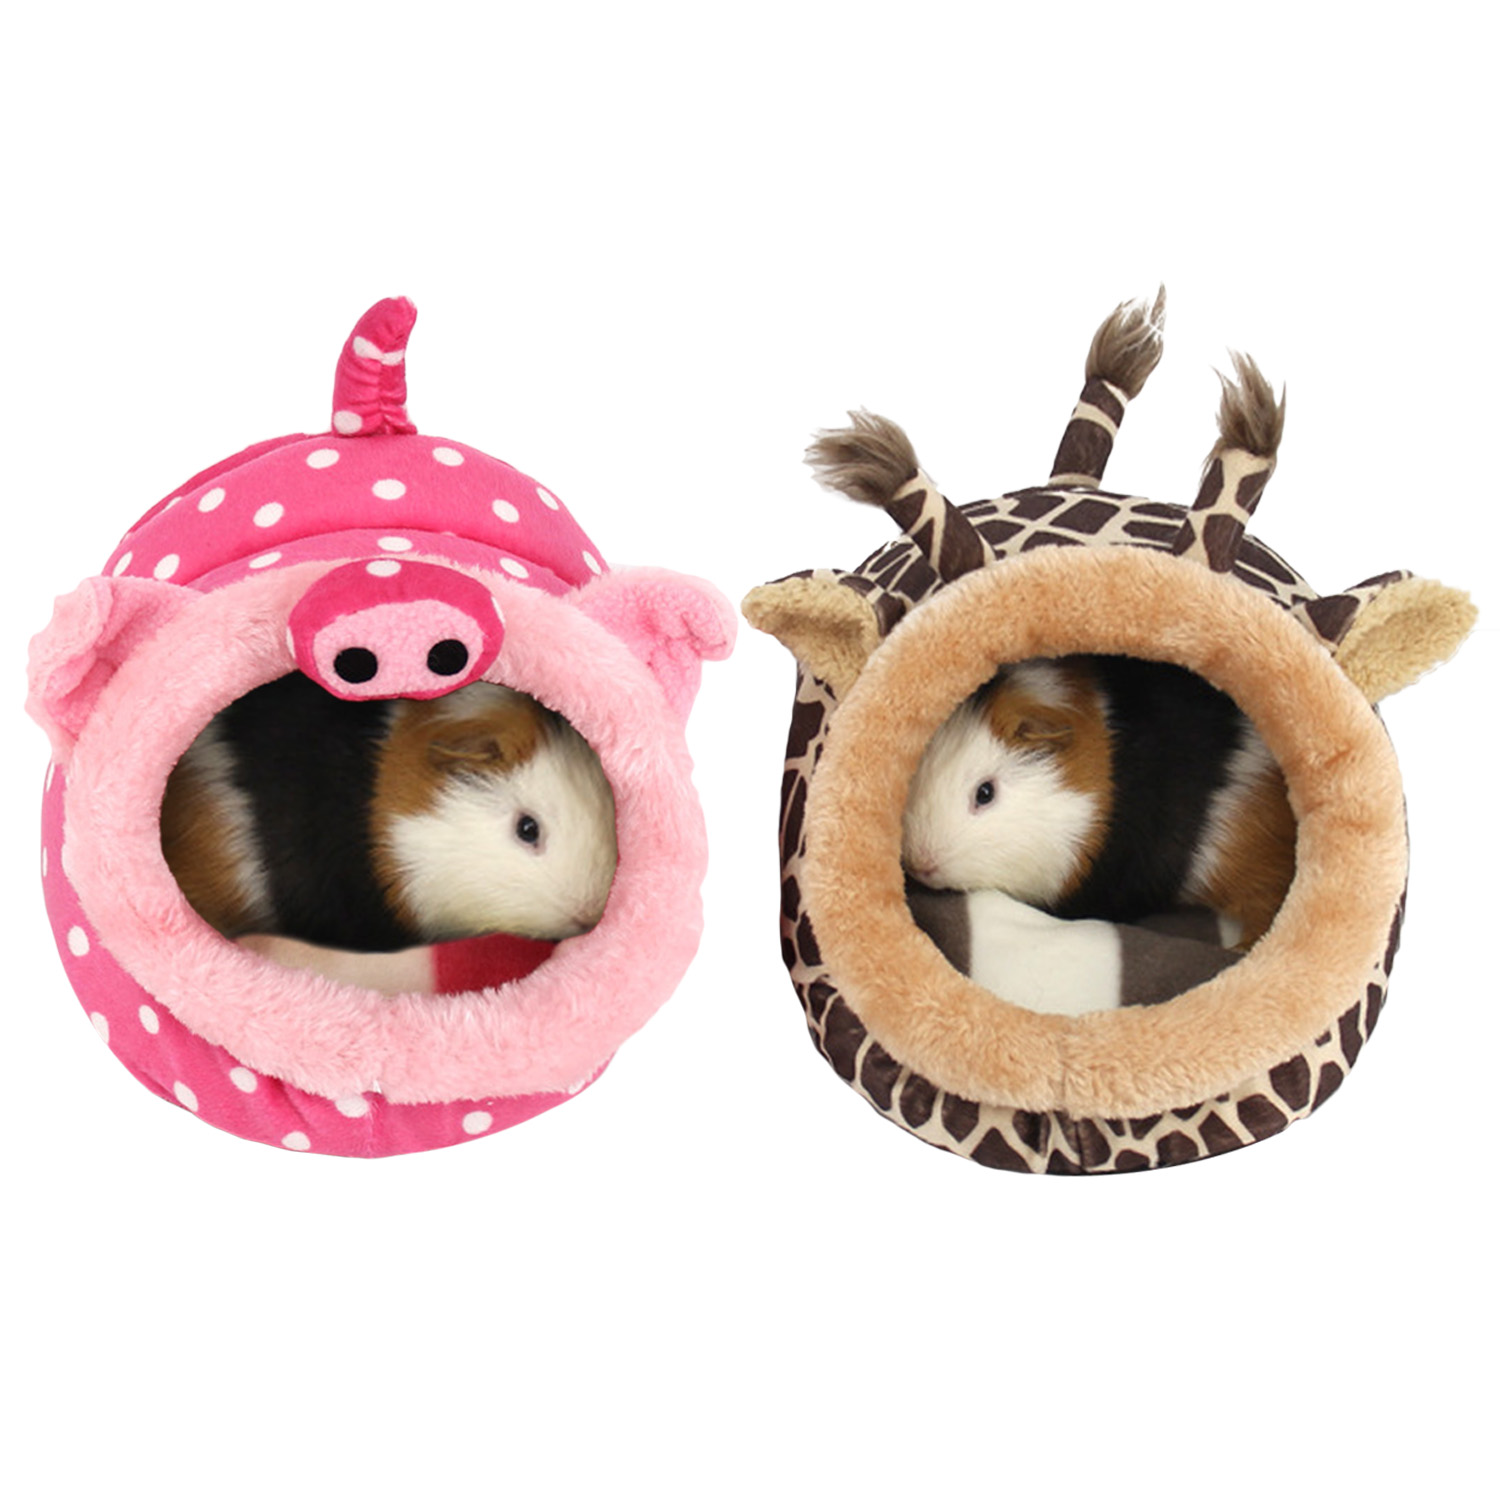 Behogar Cute Small Animal Pet Rats Hamster Squirrel Hedgehog Winter Warm Plush Cage House Nest Hamster Accessory Size L Bird Cages & Nests     - title=